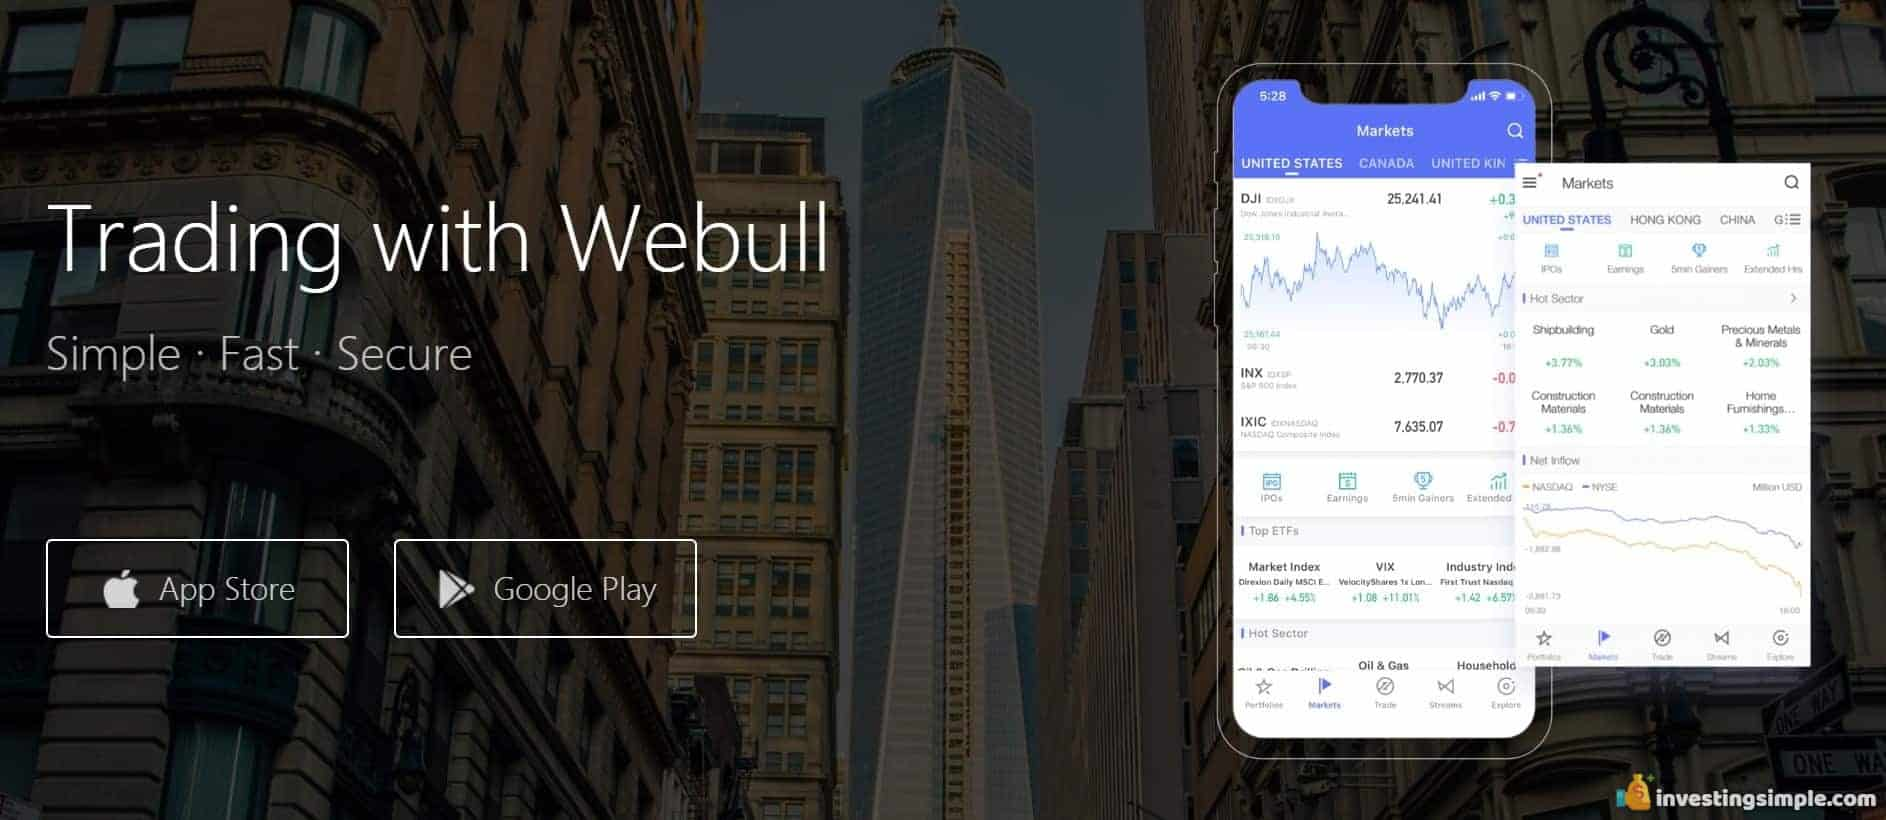 Webull is a free trading platform geared towards the research oriented active trader.